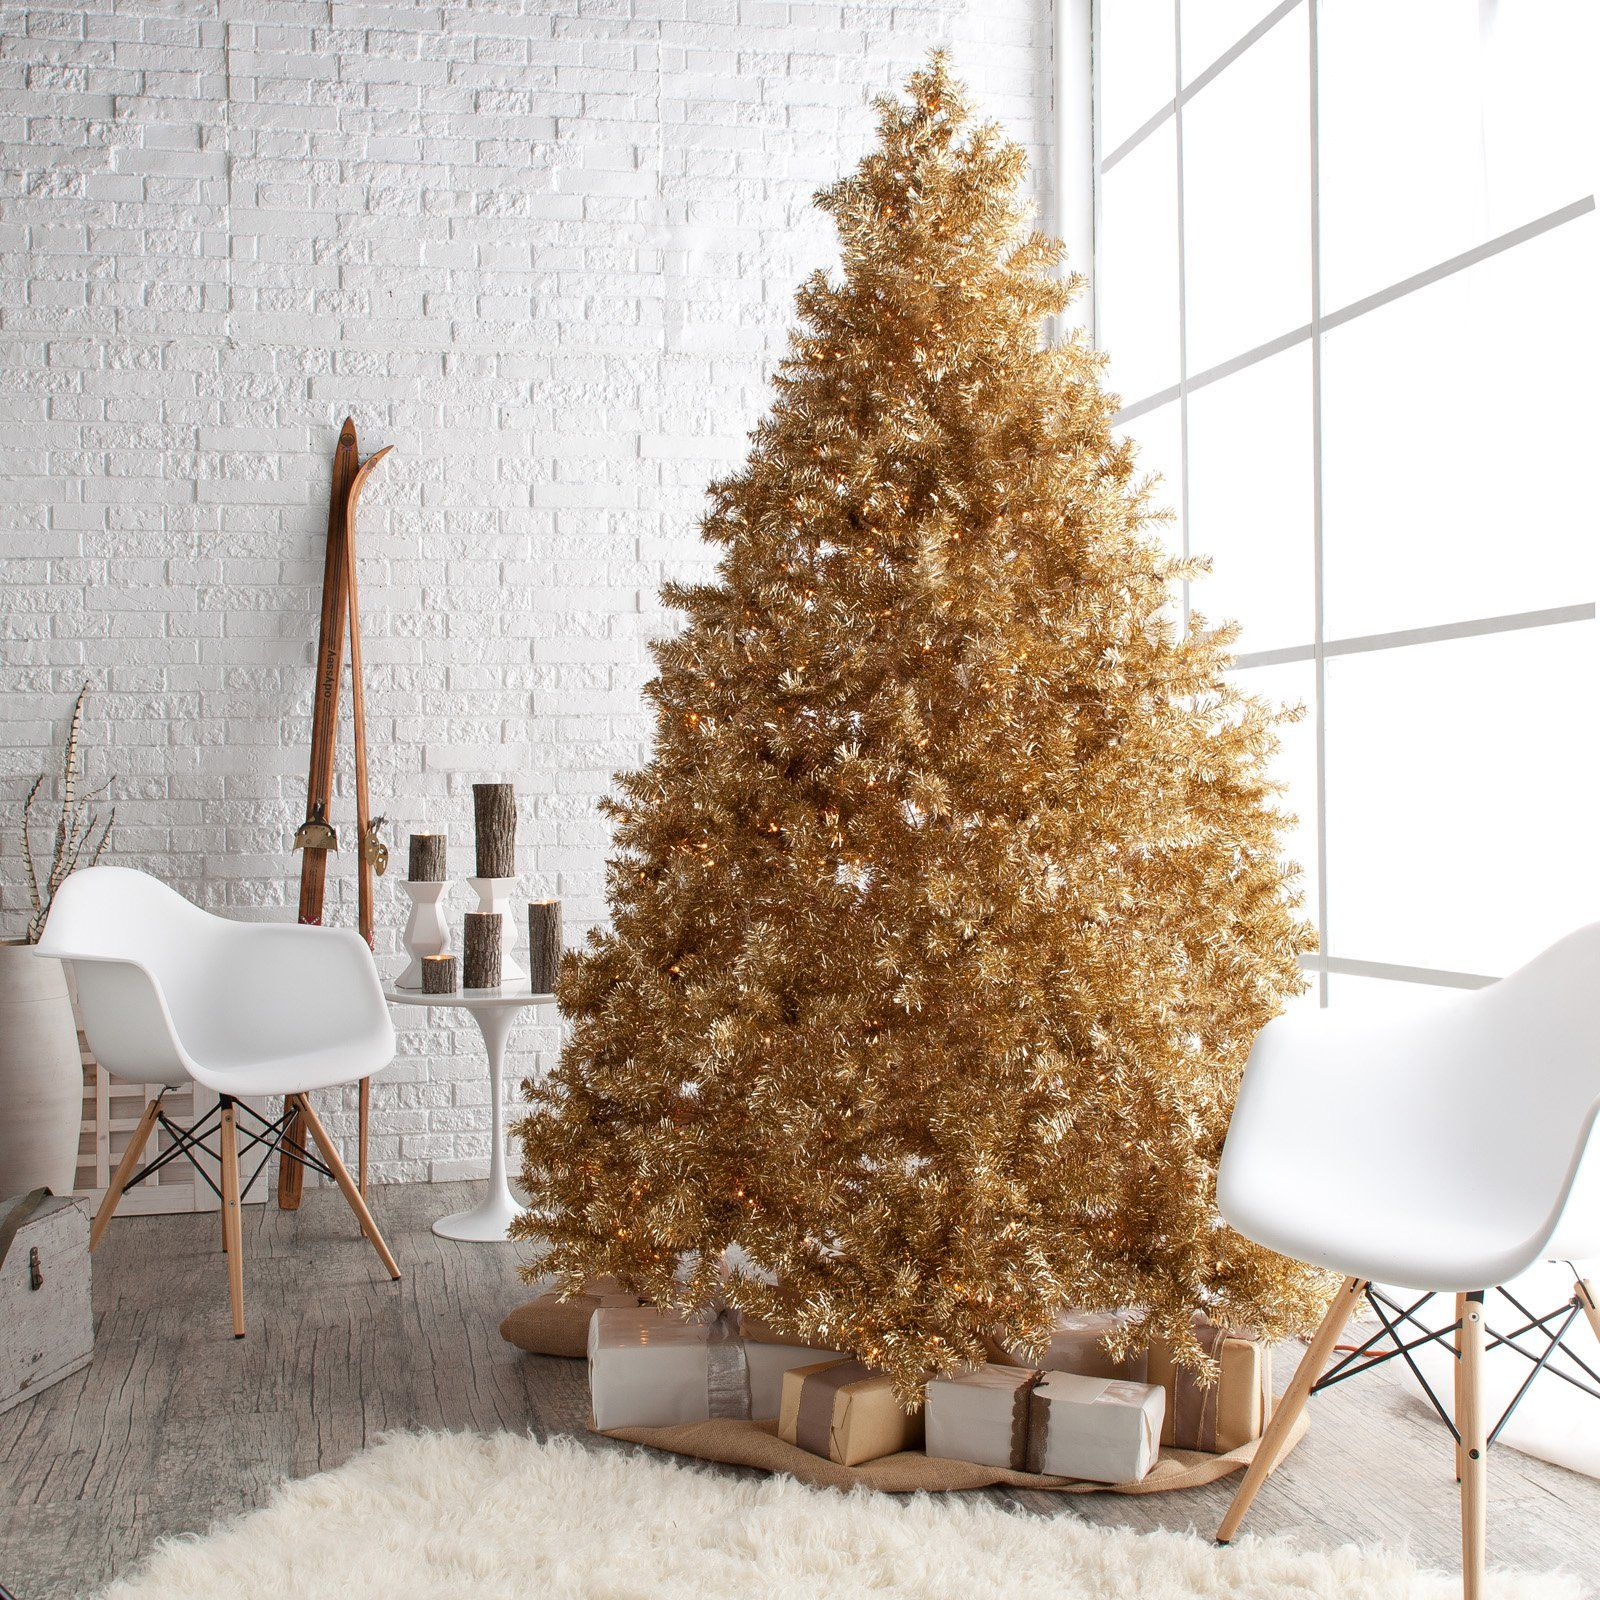 50 of the most inspiring christmas tree designs pre lit for White and gold tree decorations